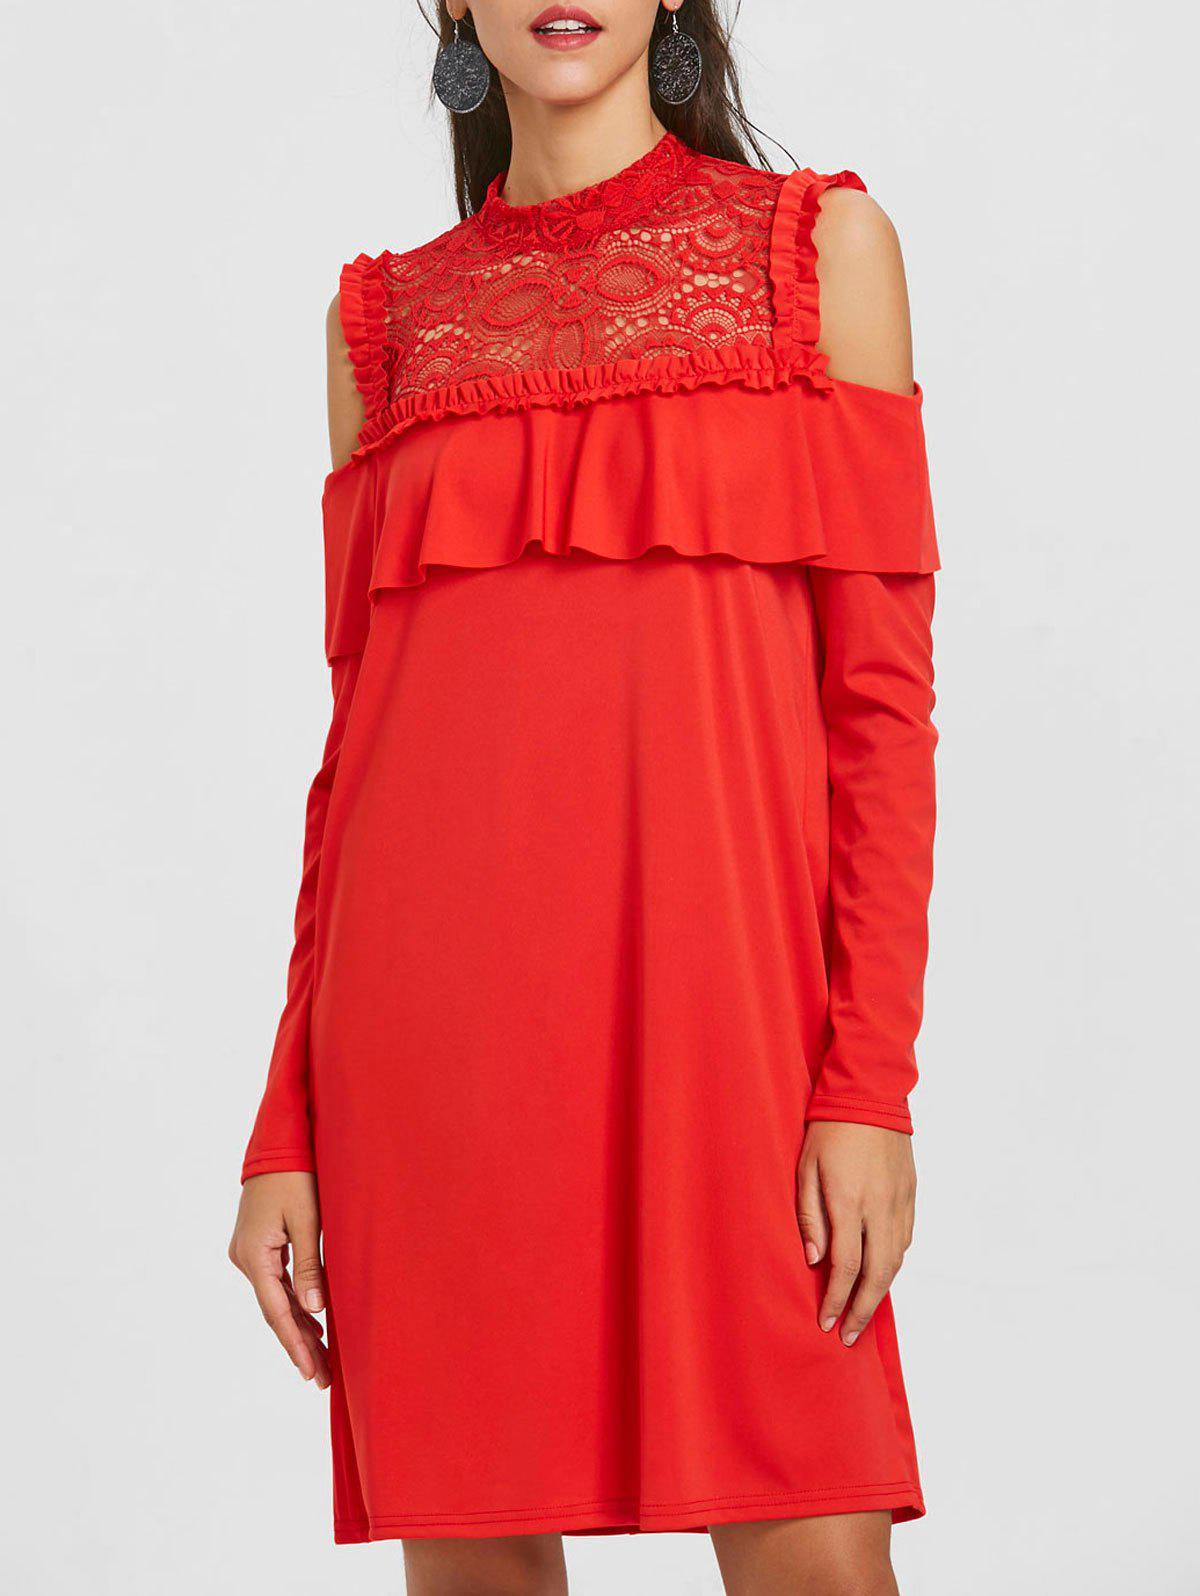 Lace Trim Open Shoulder Ruffle Dress - RED L